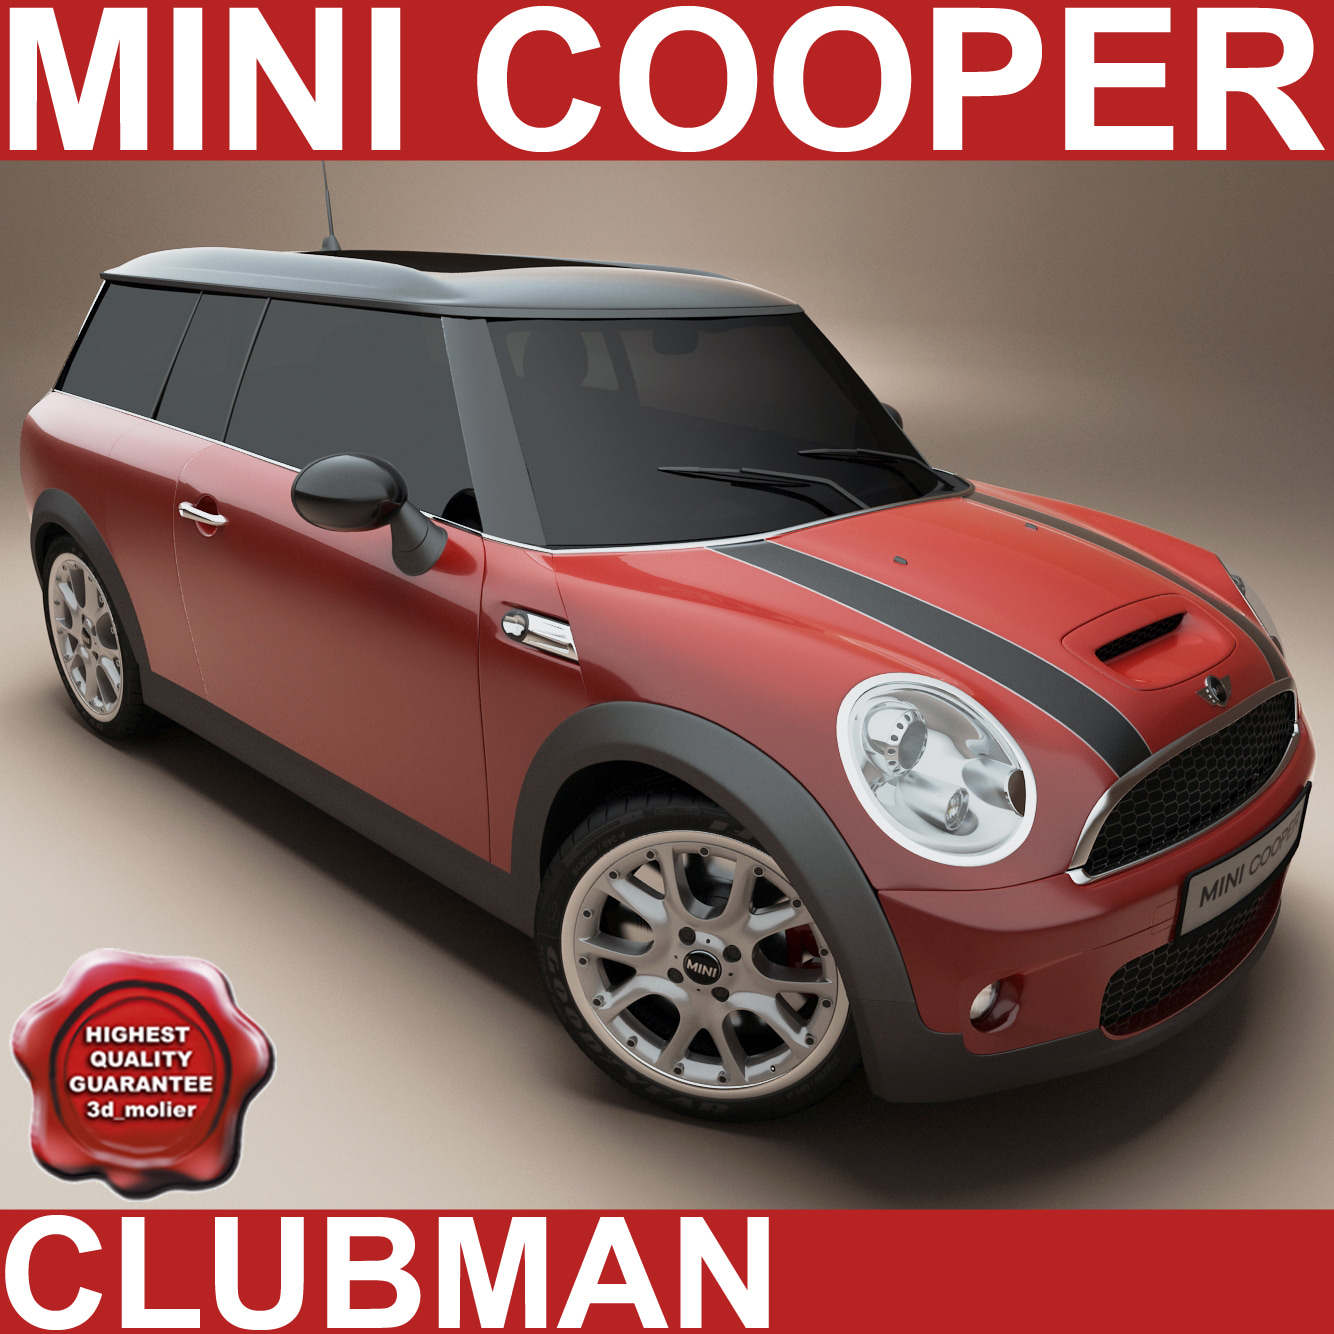 Mini_Cooper_Clubman_Red_00.jpg